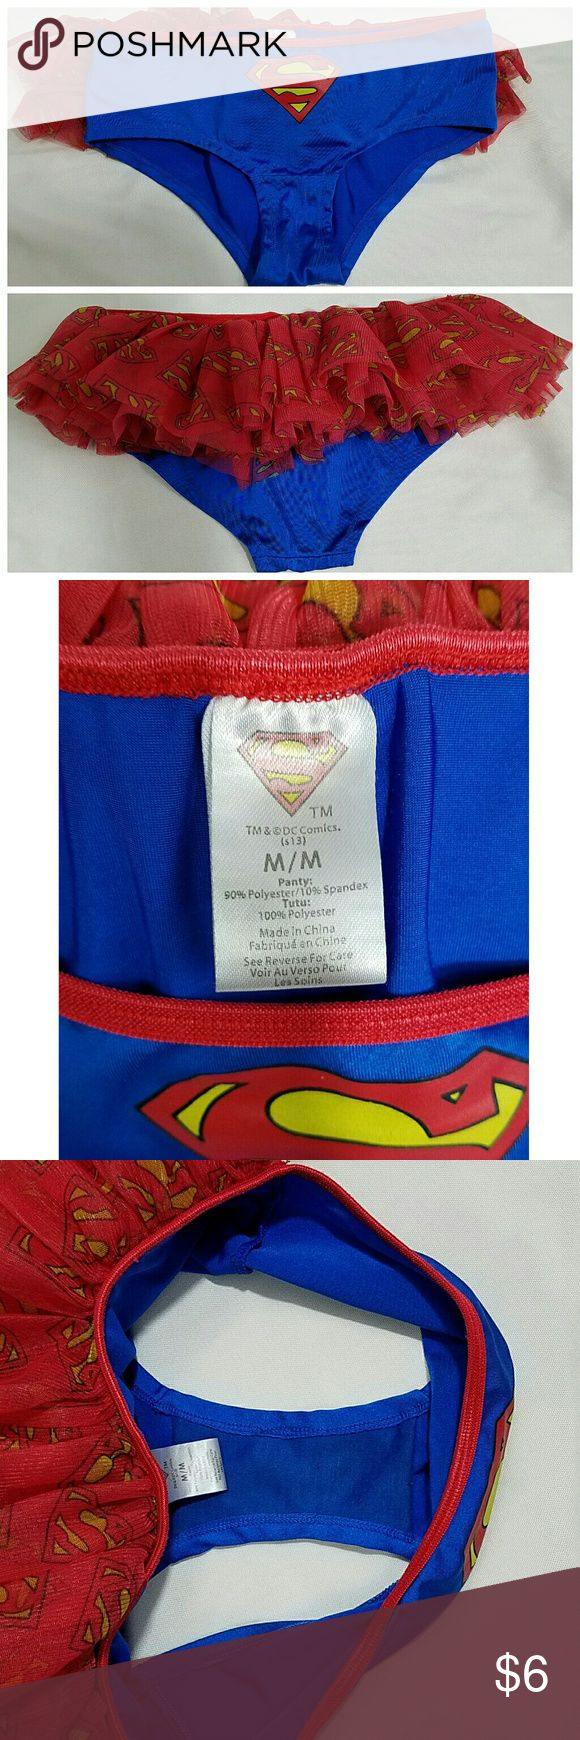 Superman Tutu Underwear Adorable size medium Superman underwear with superman half tutu on the back. Last picture is to show cleanliness. Worn once to a rave, in exceptional condition. Feel free to make an offer or bundle to save 20%, I have a lot more superman items in my closet! Hot Topic Intimates & Sleepwear Panties